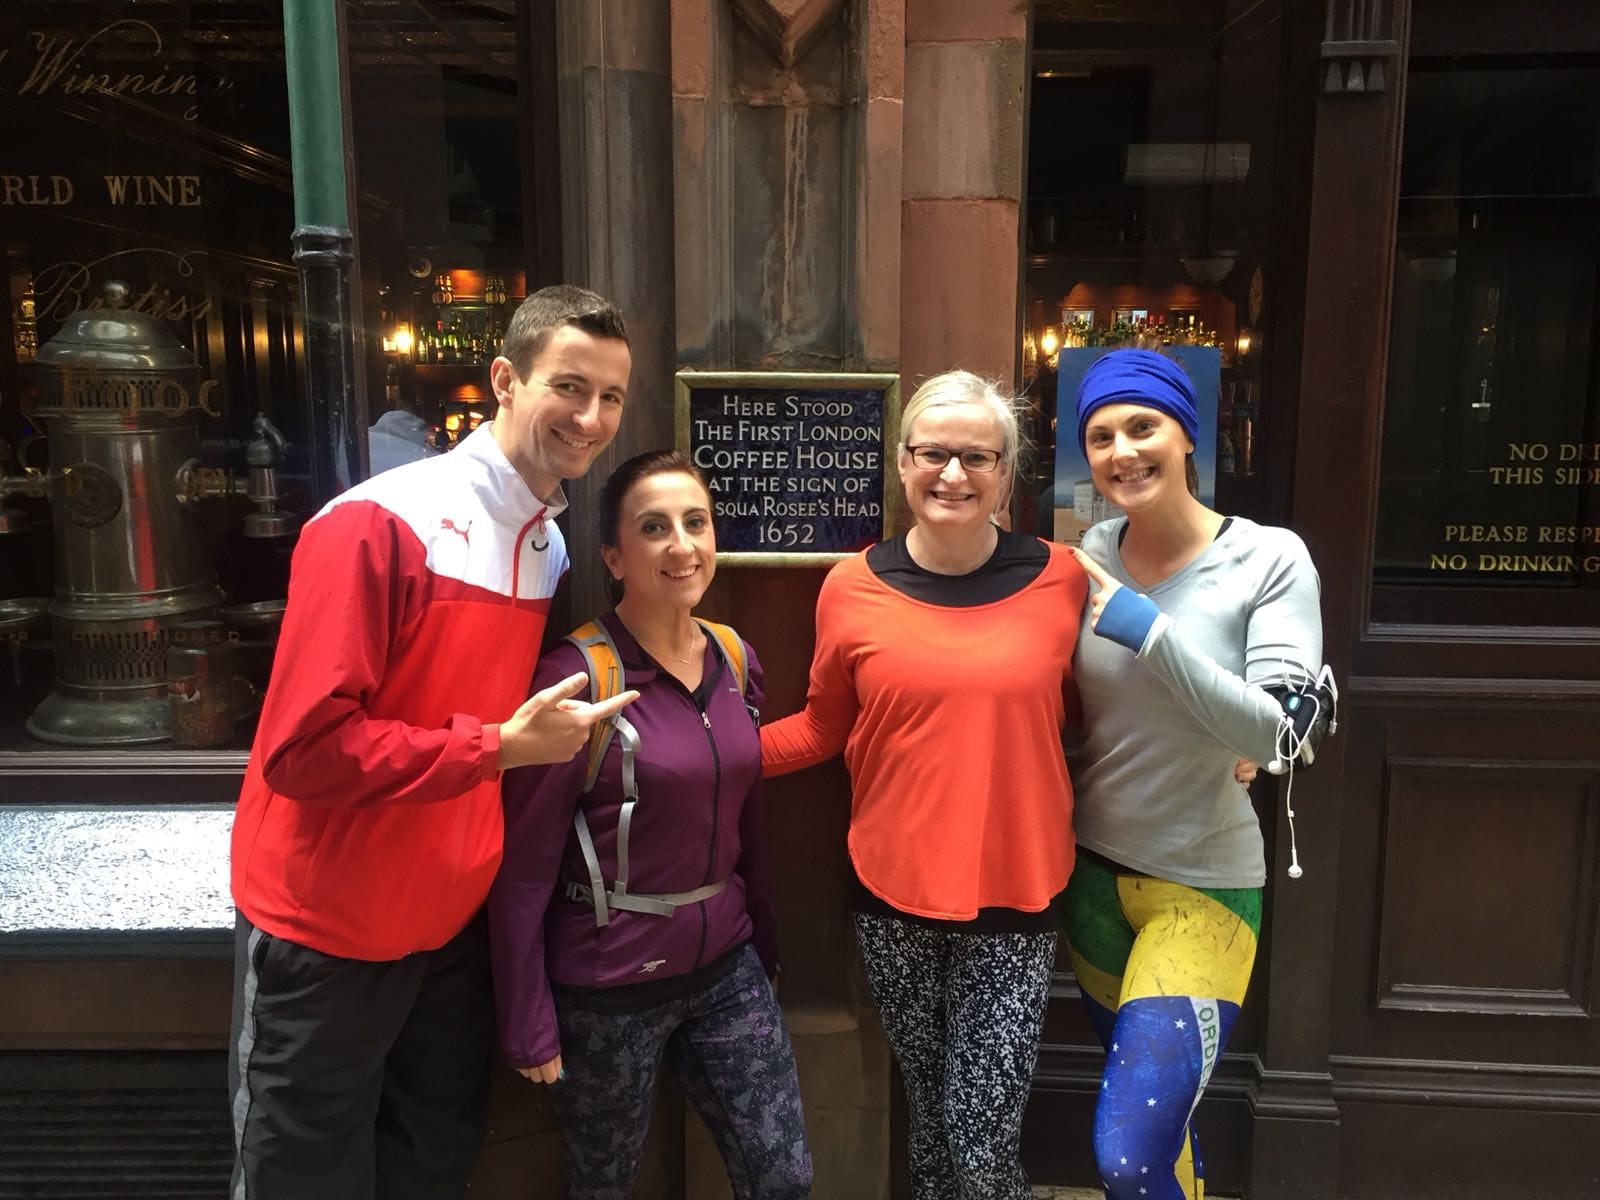 London's Coffee Revolution - Running Tour of London